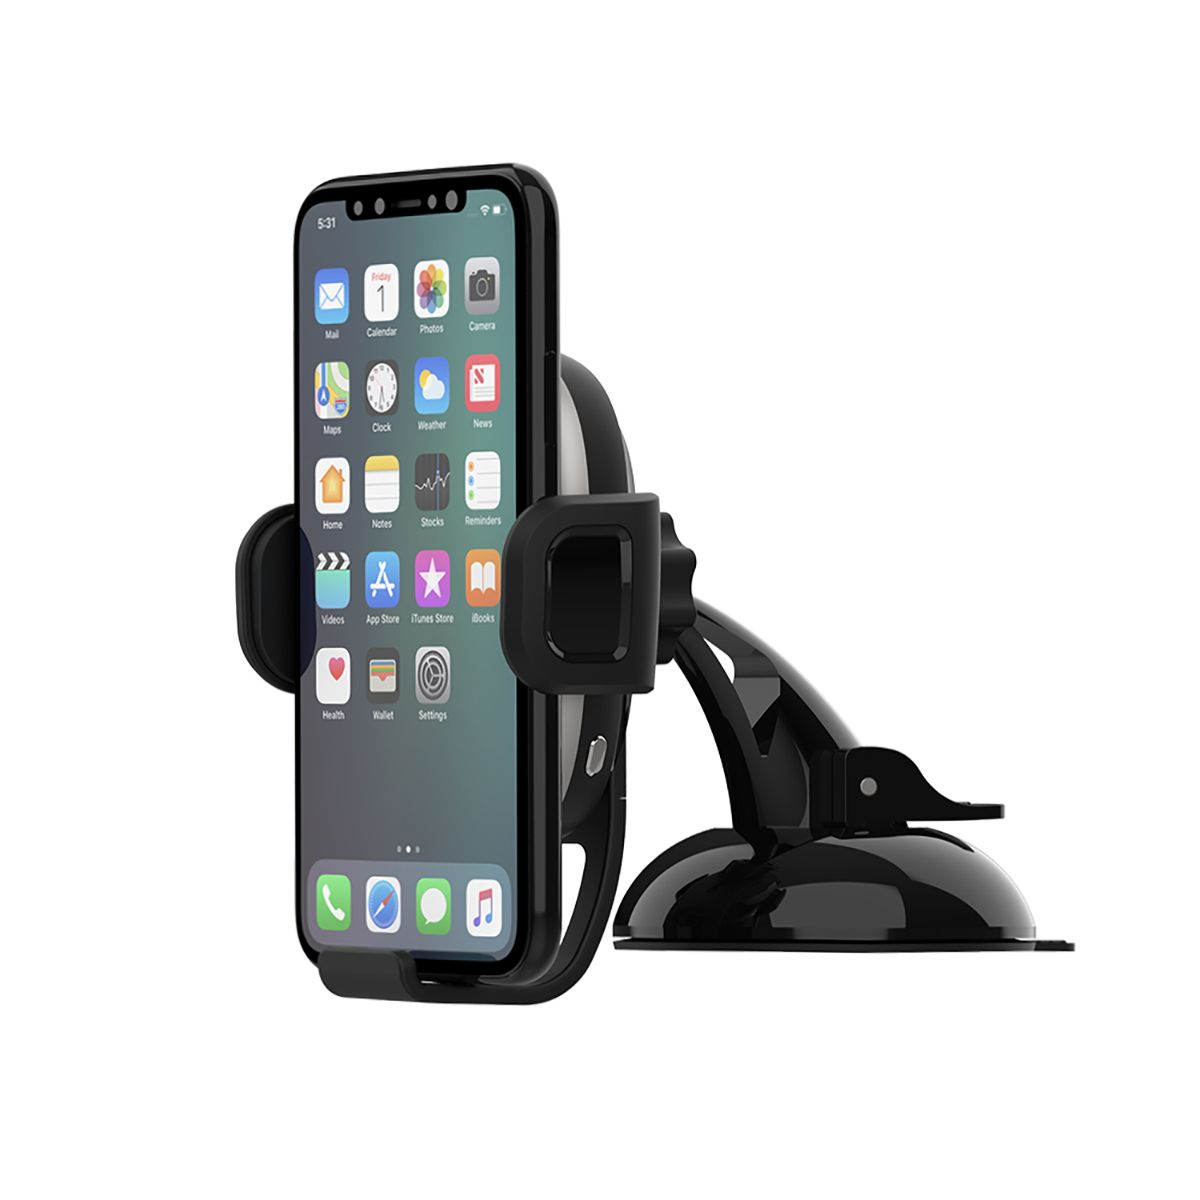 AutoGrip Wireless Car Charger Dash Mount - Black